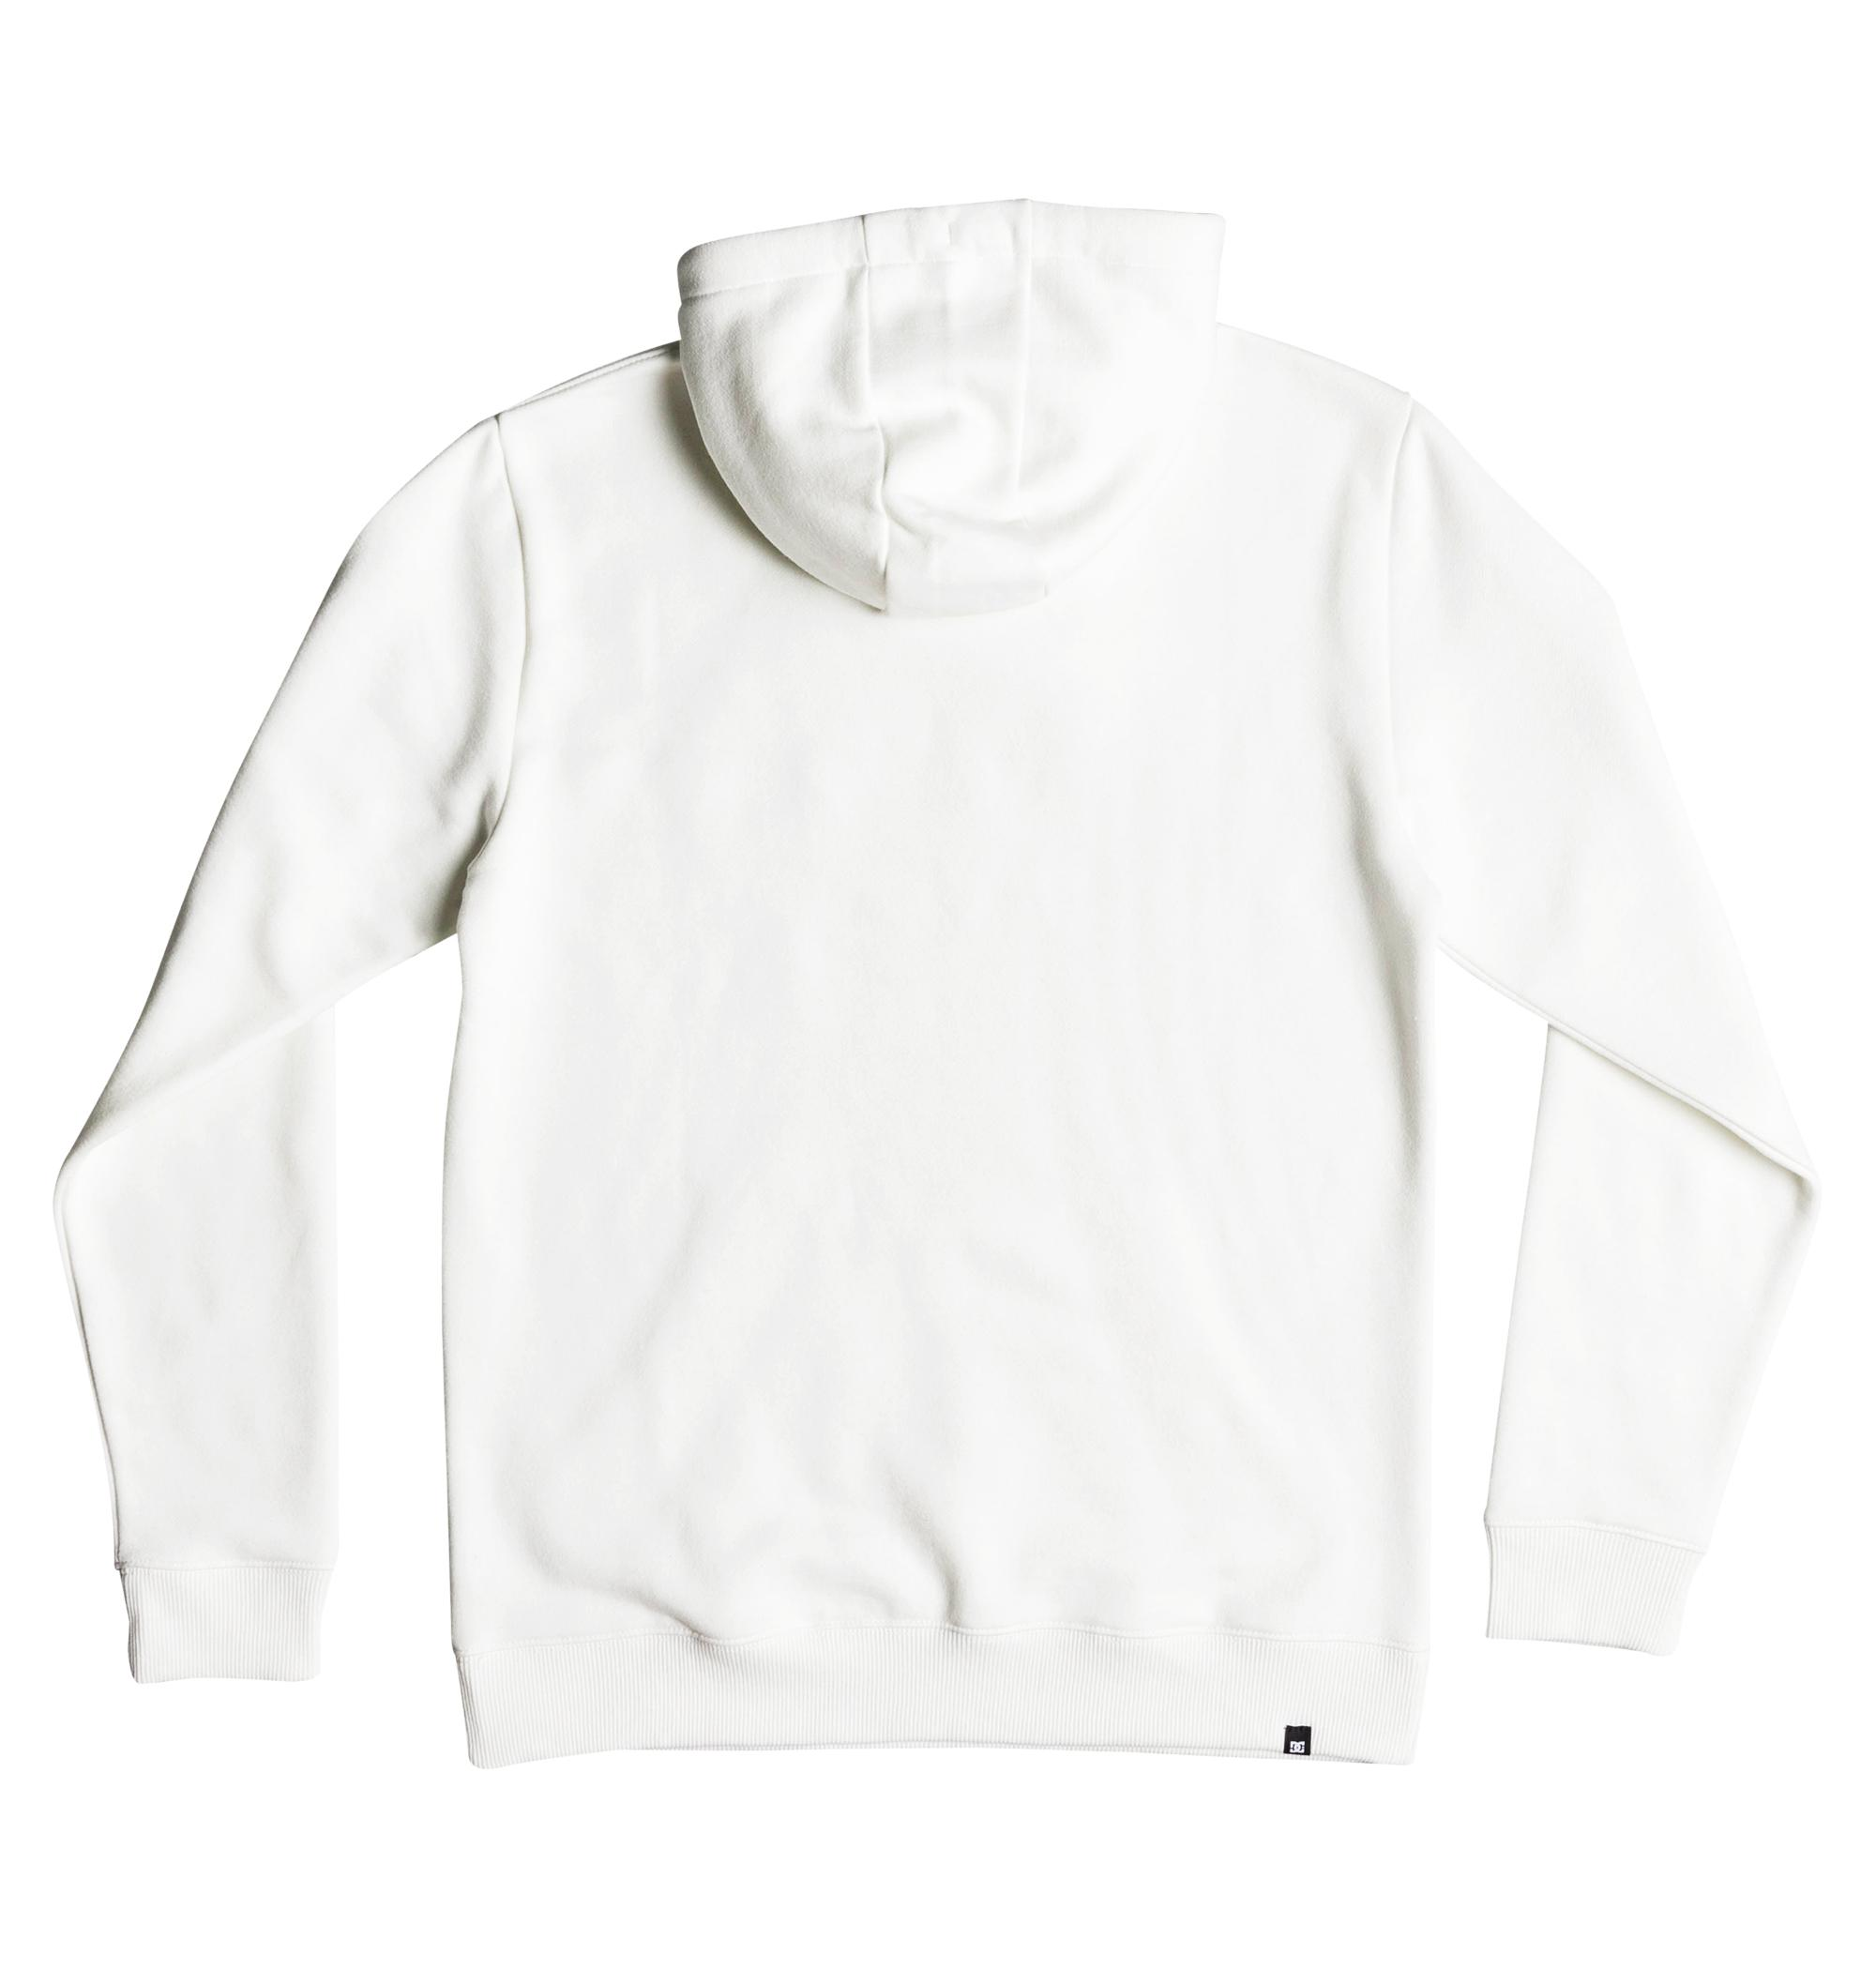 Sudadera Dc Shoes modelo Vertical Zone en color blanco para hombre